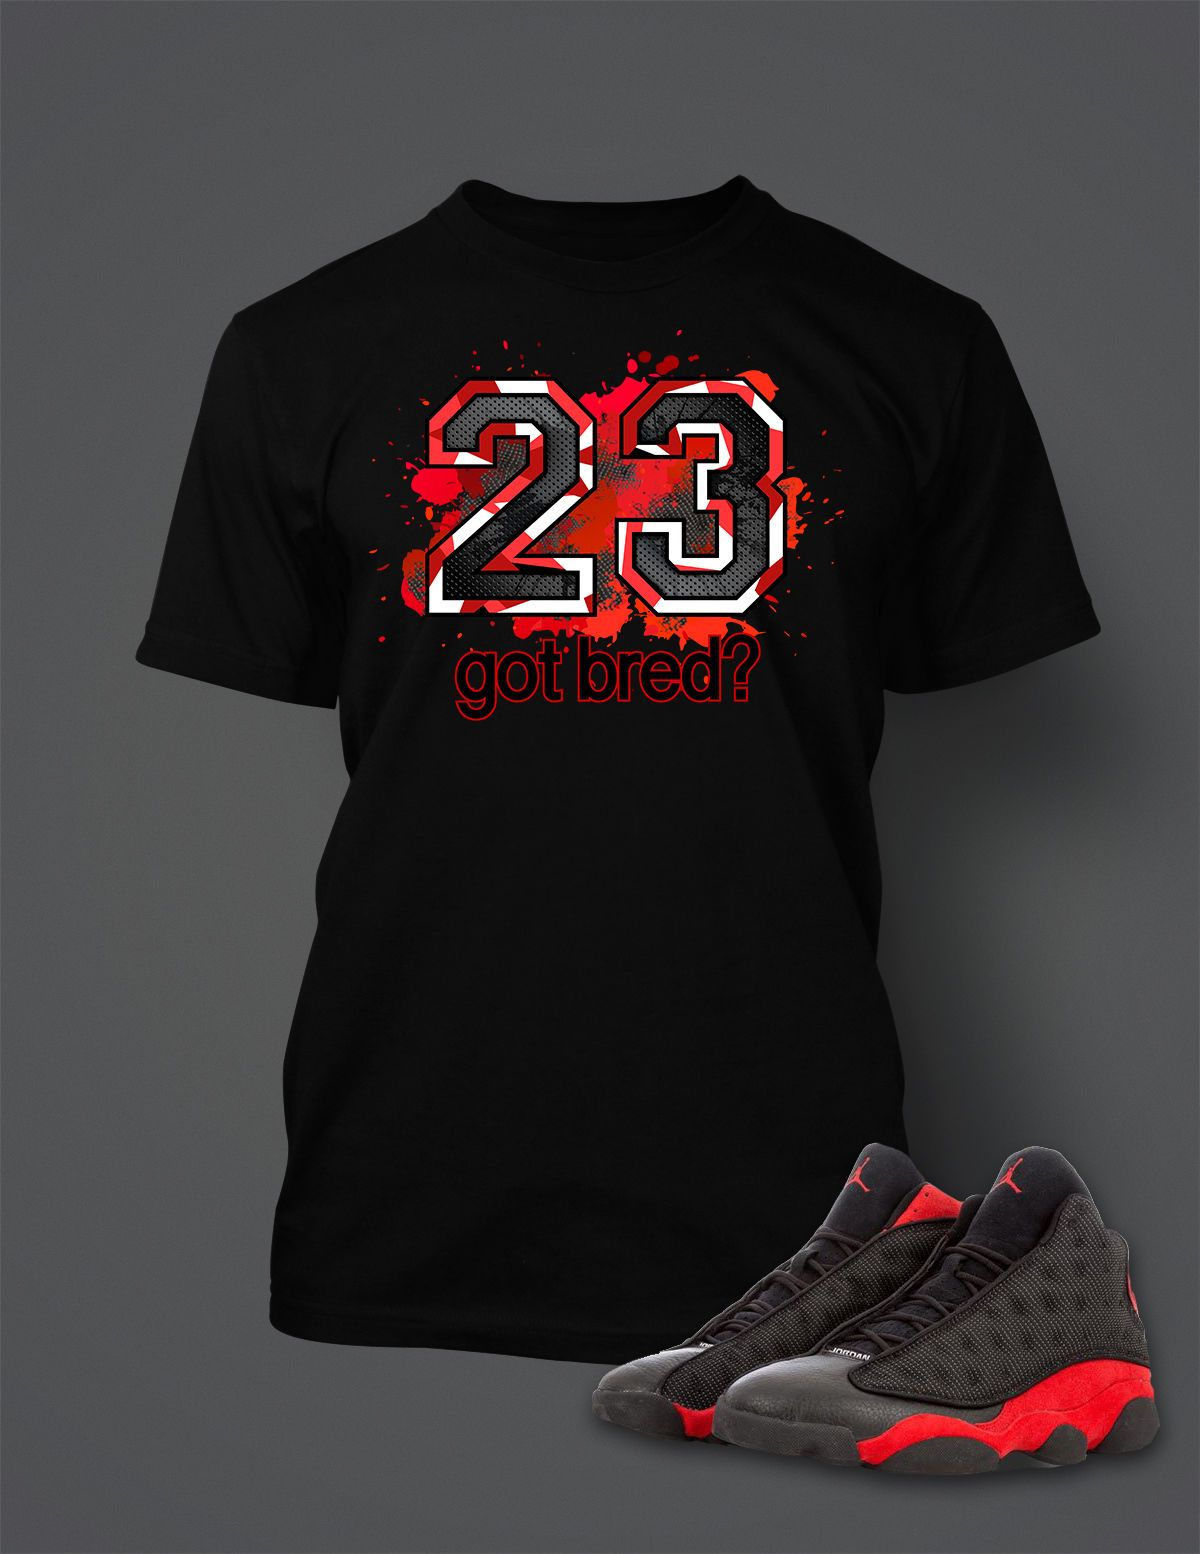 68020d870b7342 23 Got Bred Tee Shirt to Match Retro Air Jordan 13 Shoe Mens Graphic T Shirt